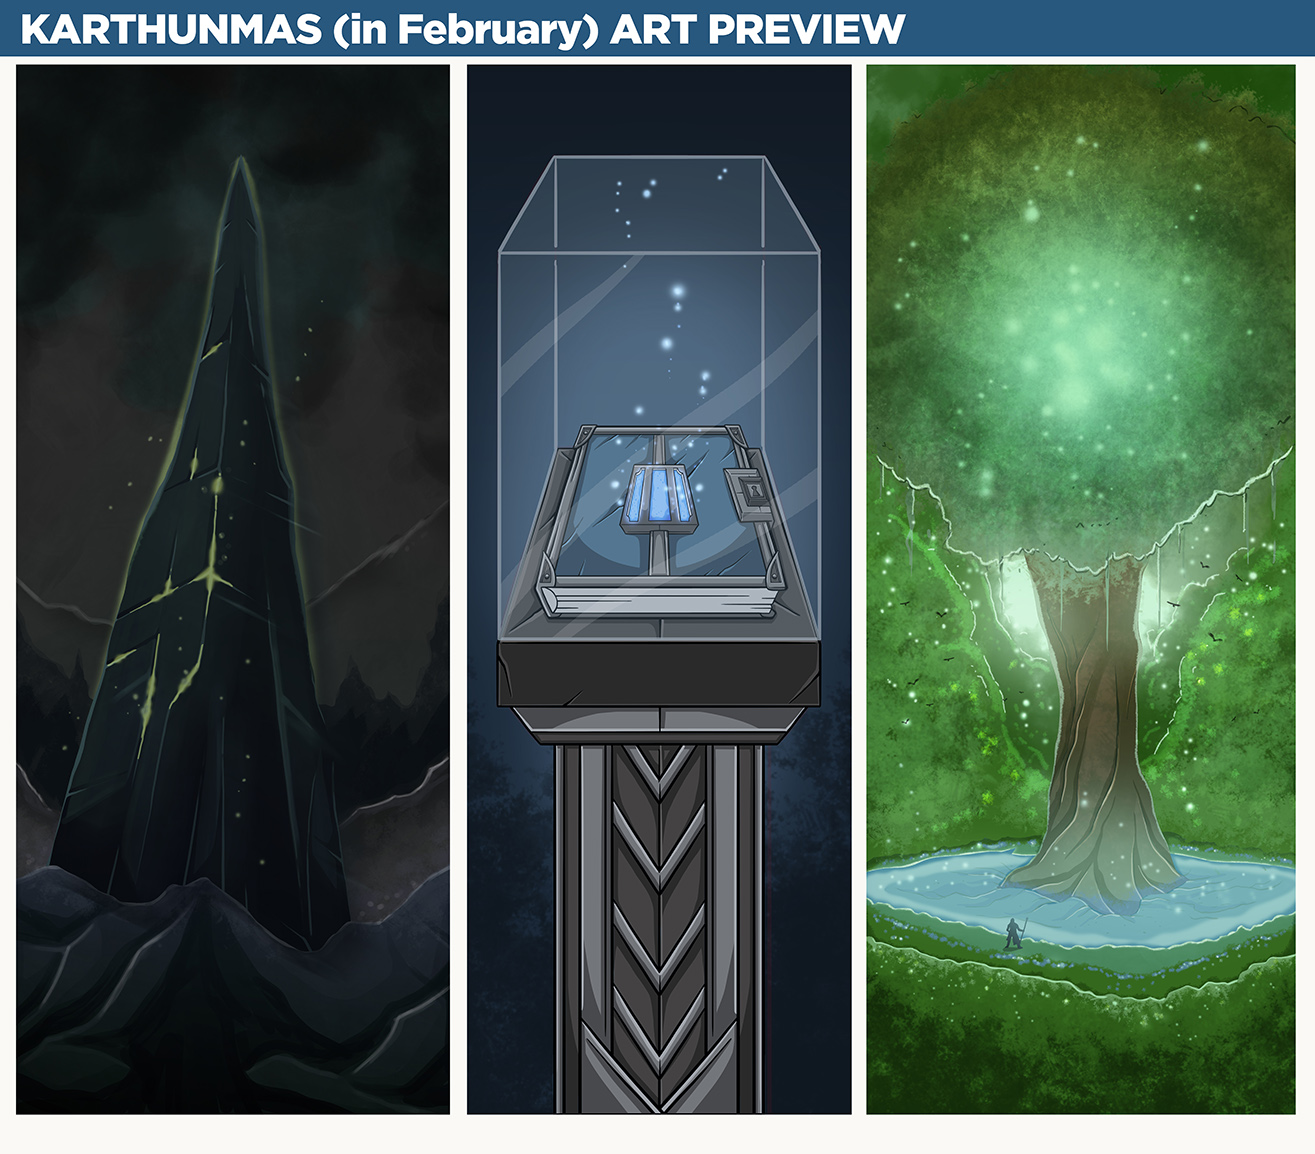 Karthunmas Art Preview: Final